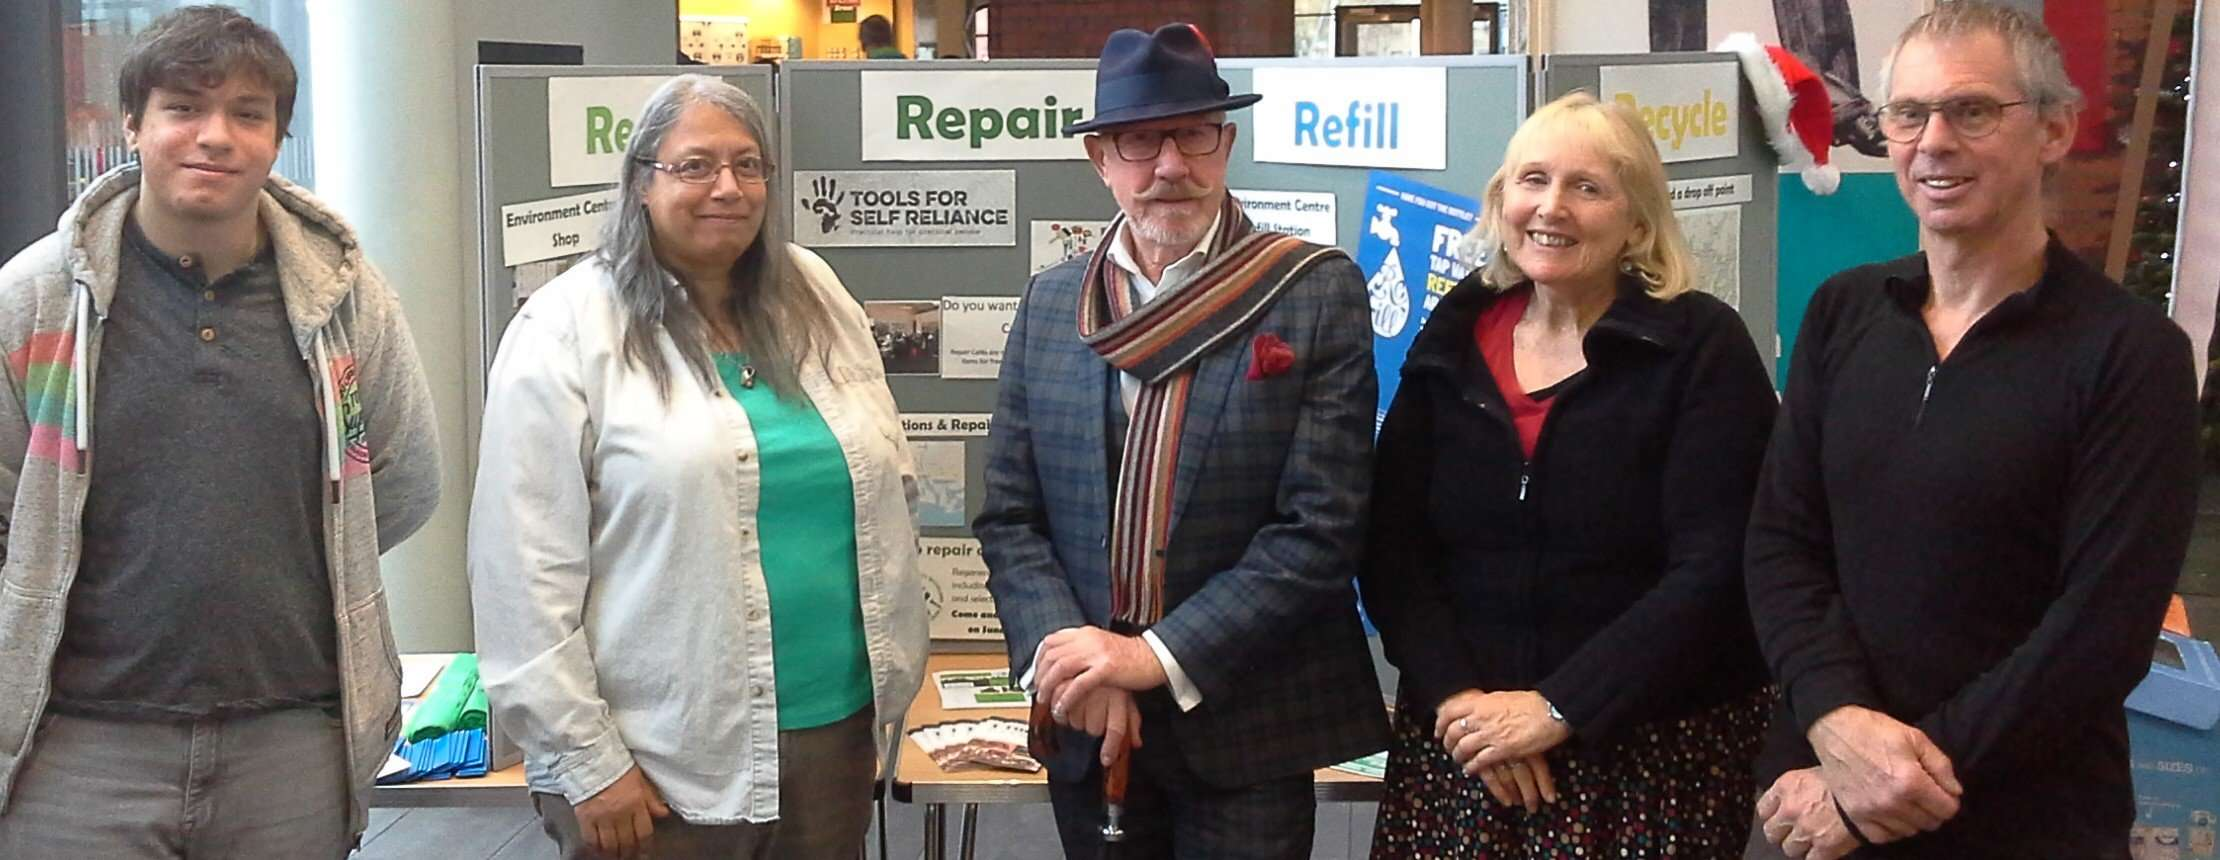 Swansea Volunteer Fixers At Green Fayre 23.12.19 Cropped